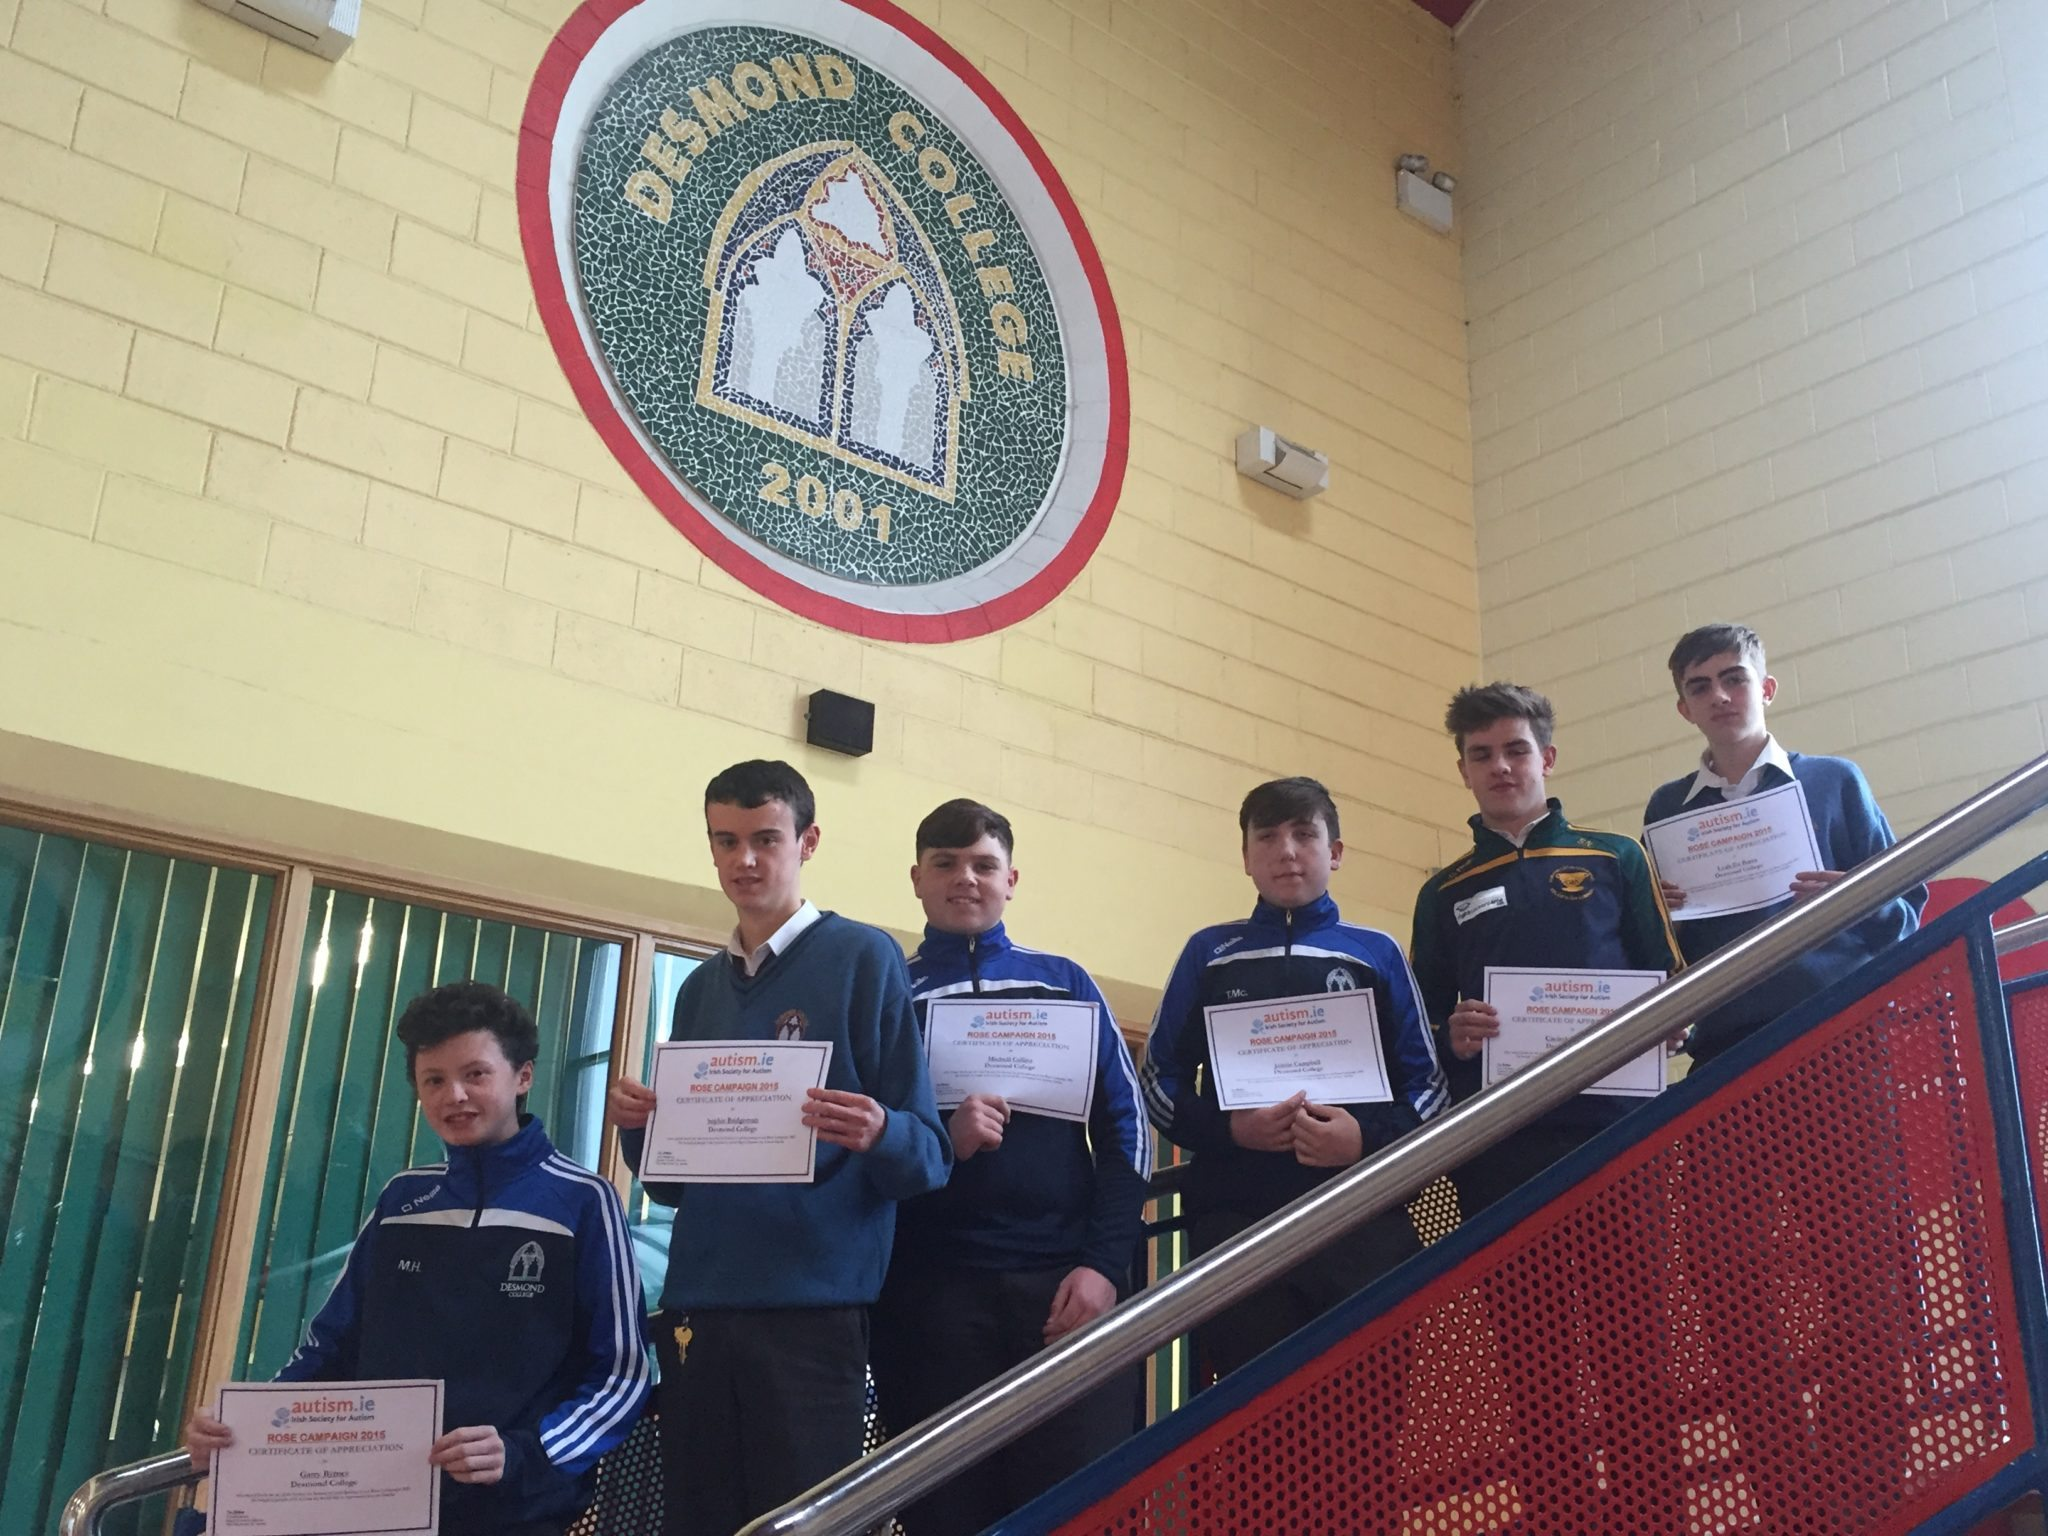 November 2015: Desmond College TY Students from NewcastleWest Co Limerick, involved in the Rose Campaign raising money for autism